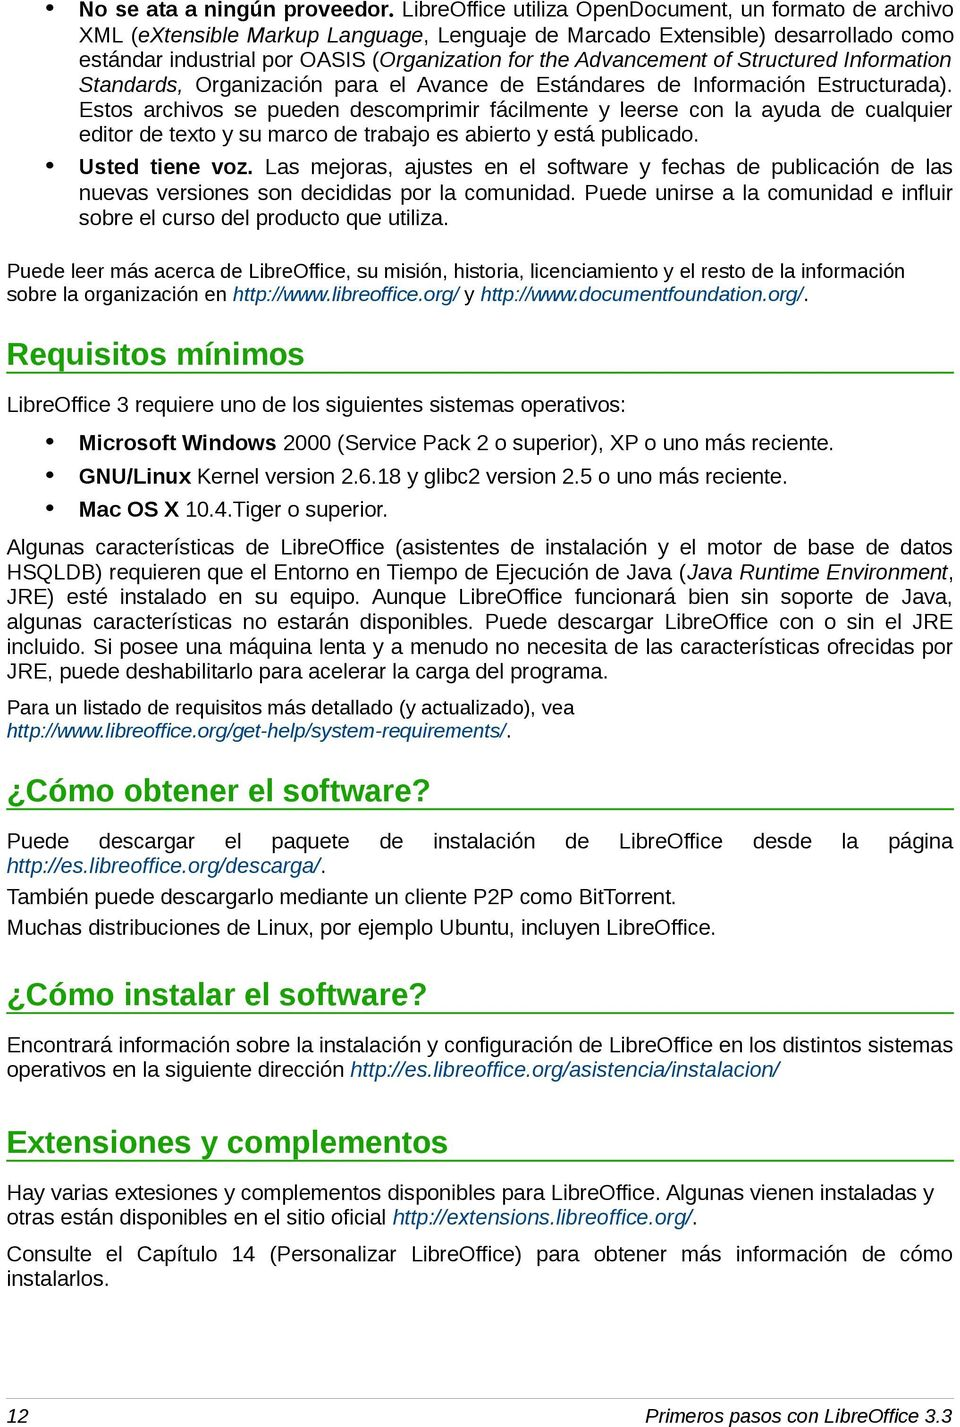 Advancement of Structured Information Standards, Organización para el Avance de Estándares de Información Estructurada).